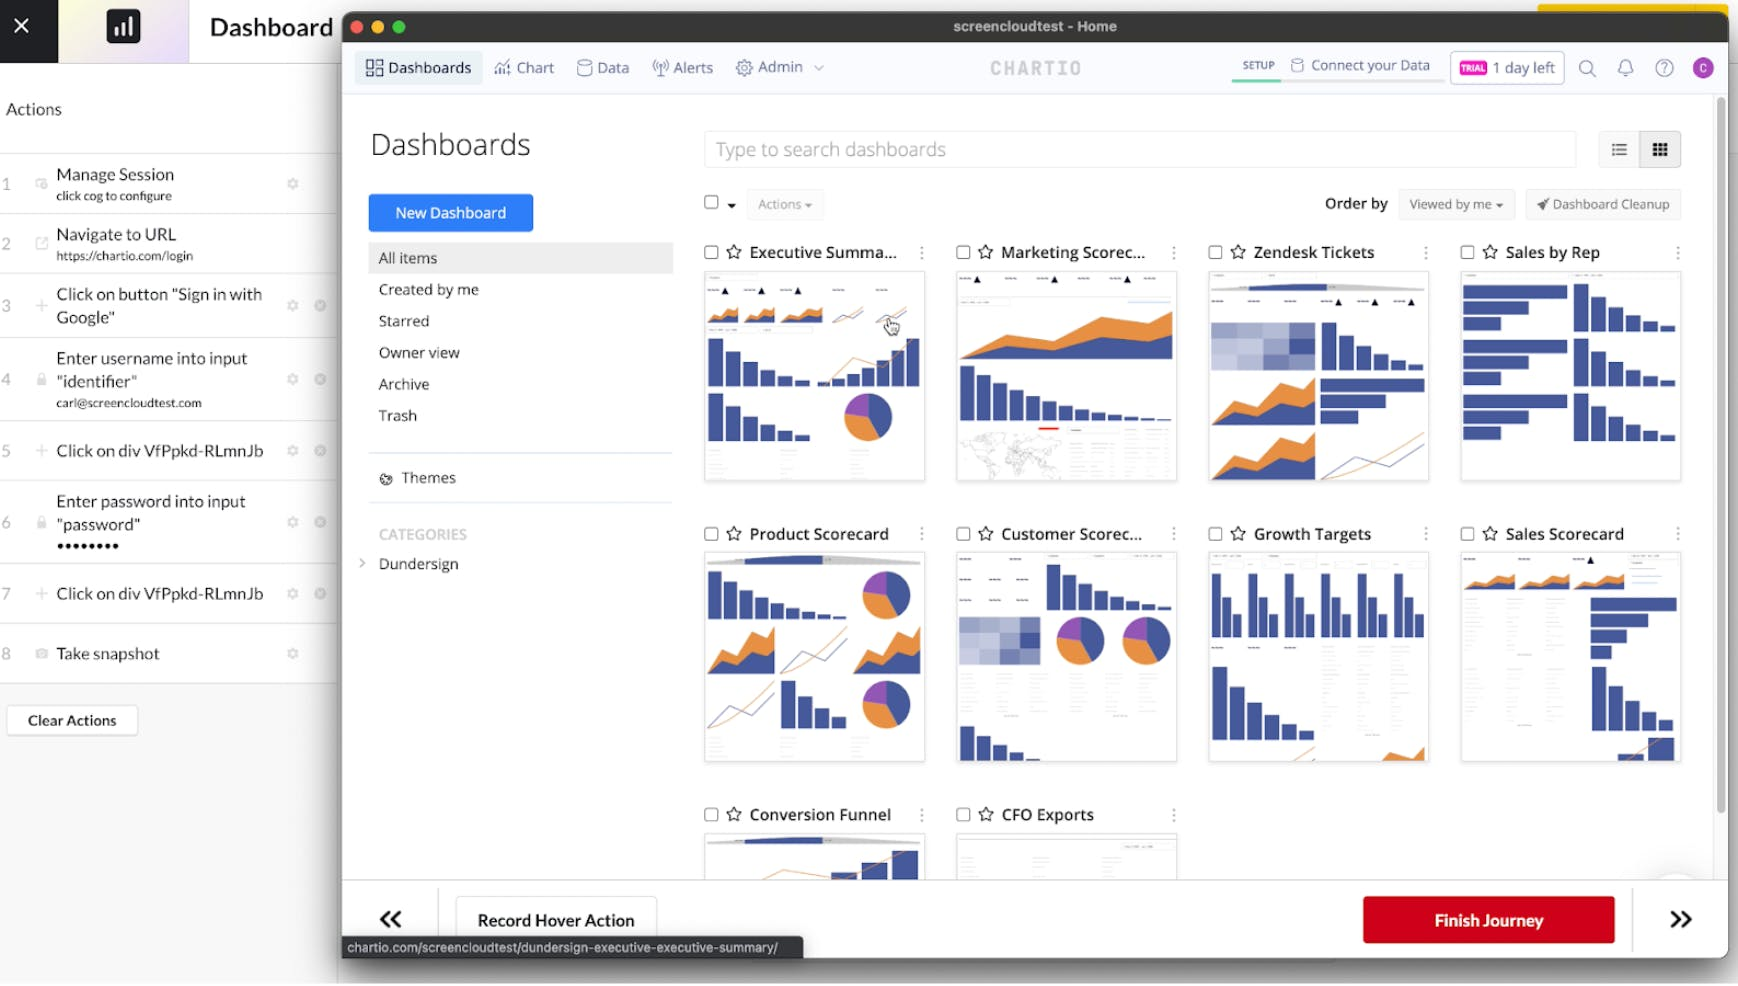 ScreenCloud Dashboards - Journey Five 2.22.2021.png